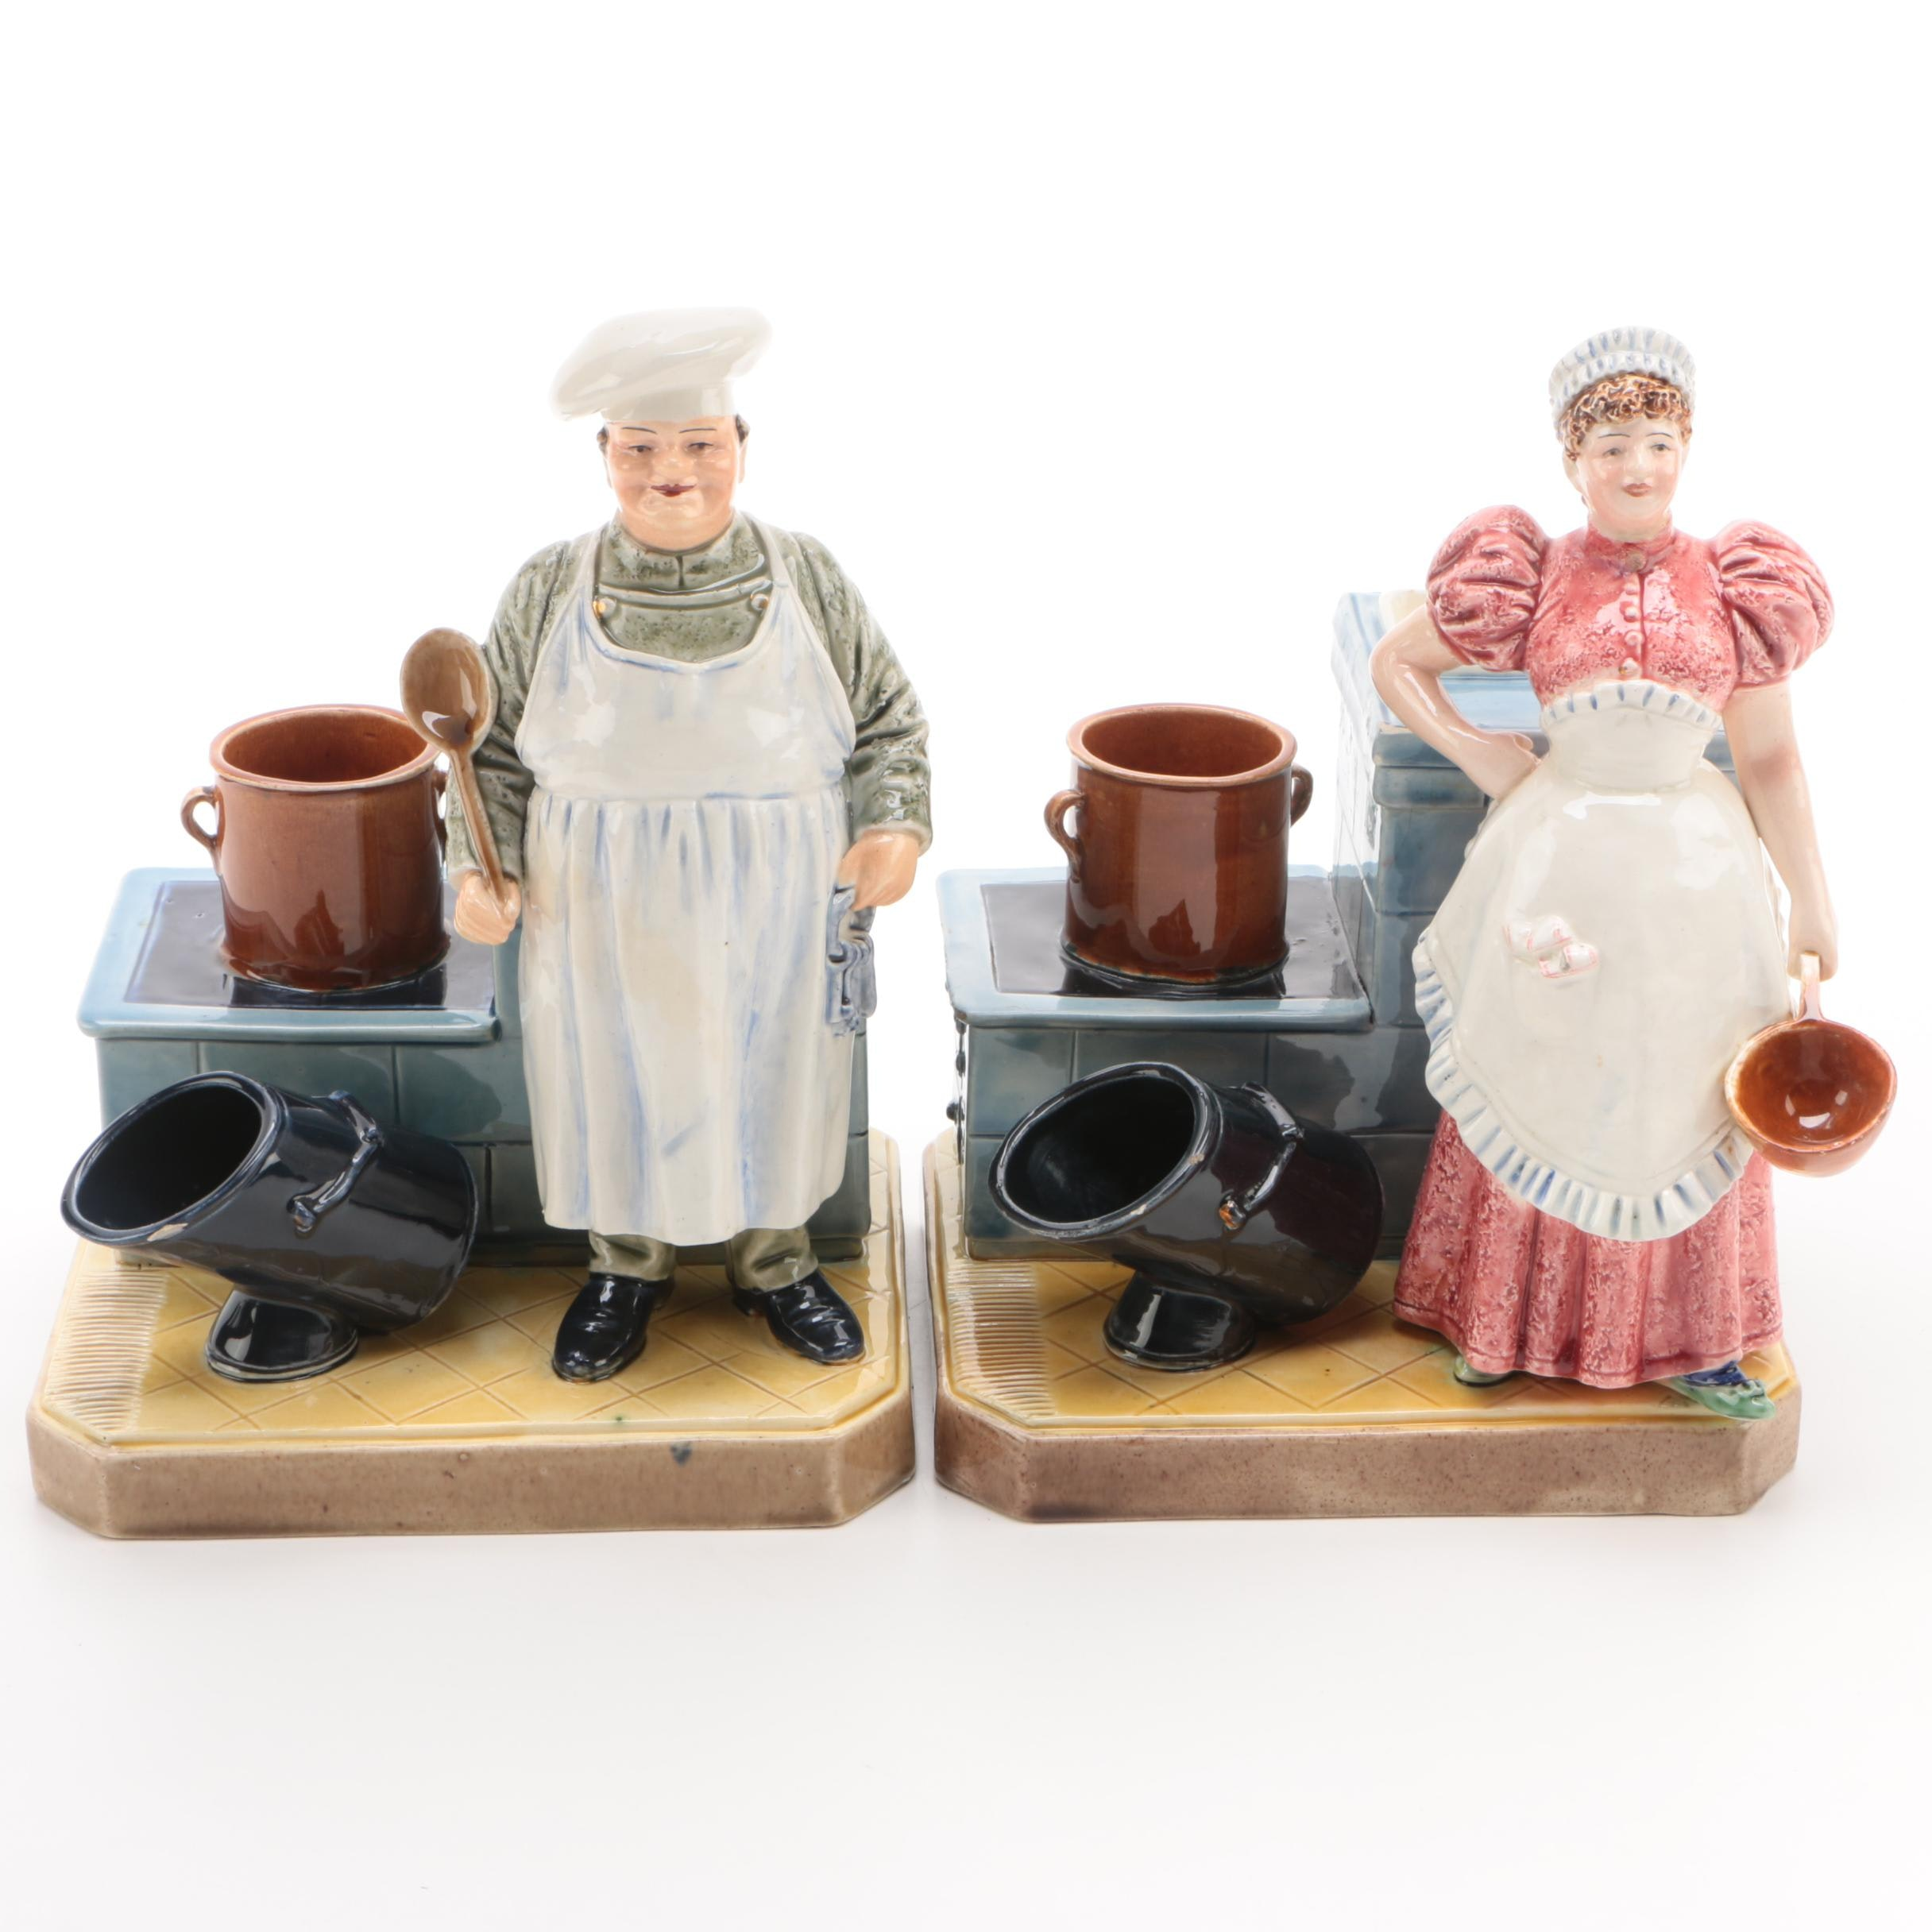 Figural Ceramic Cookie Jars Depicting Cooks in the Kitchen